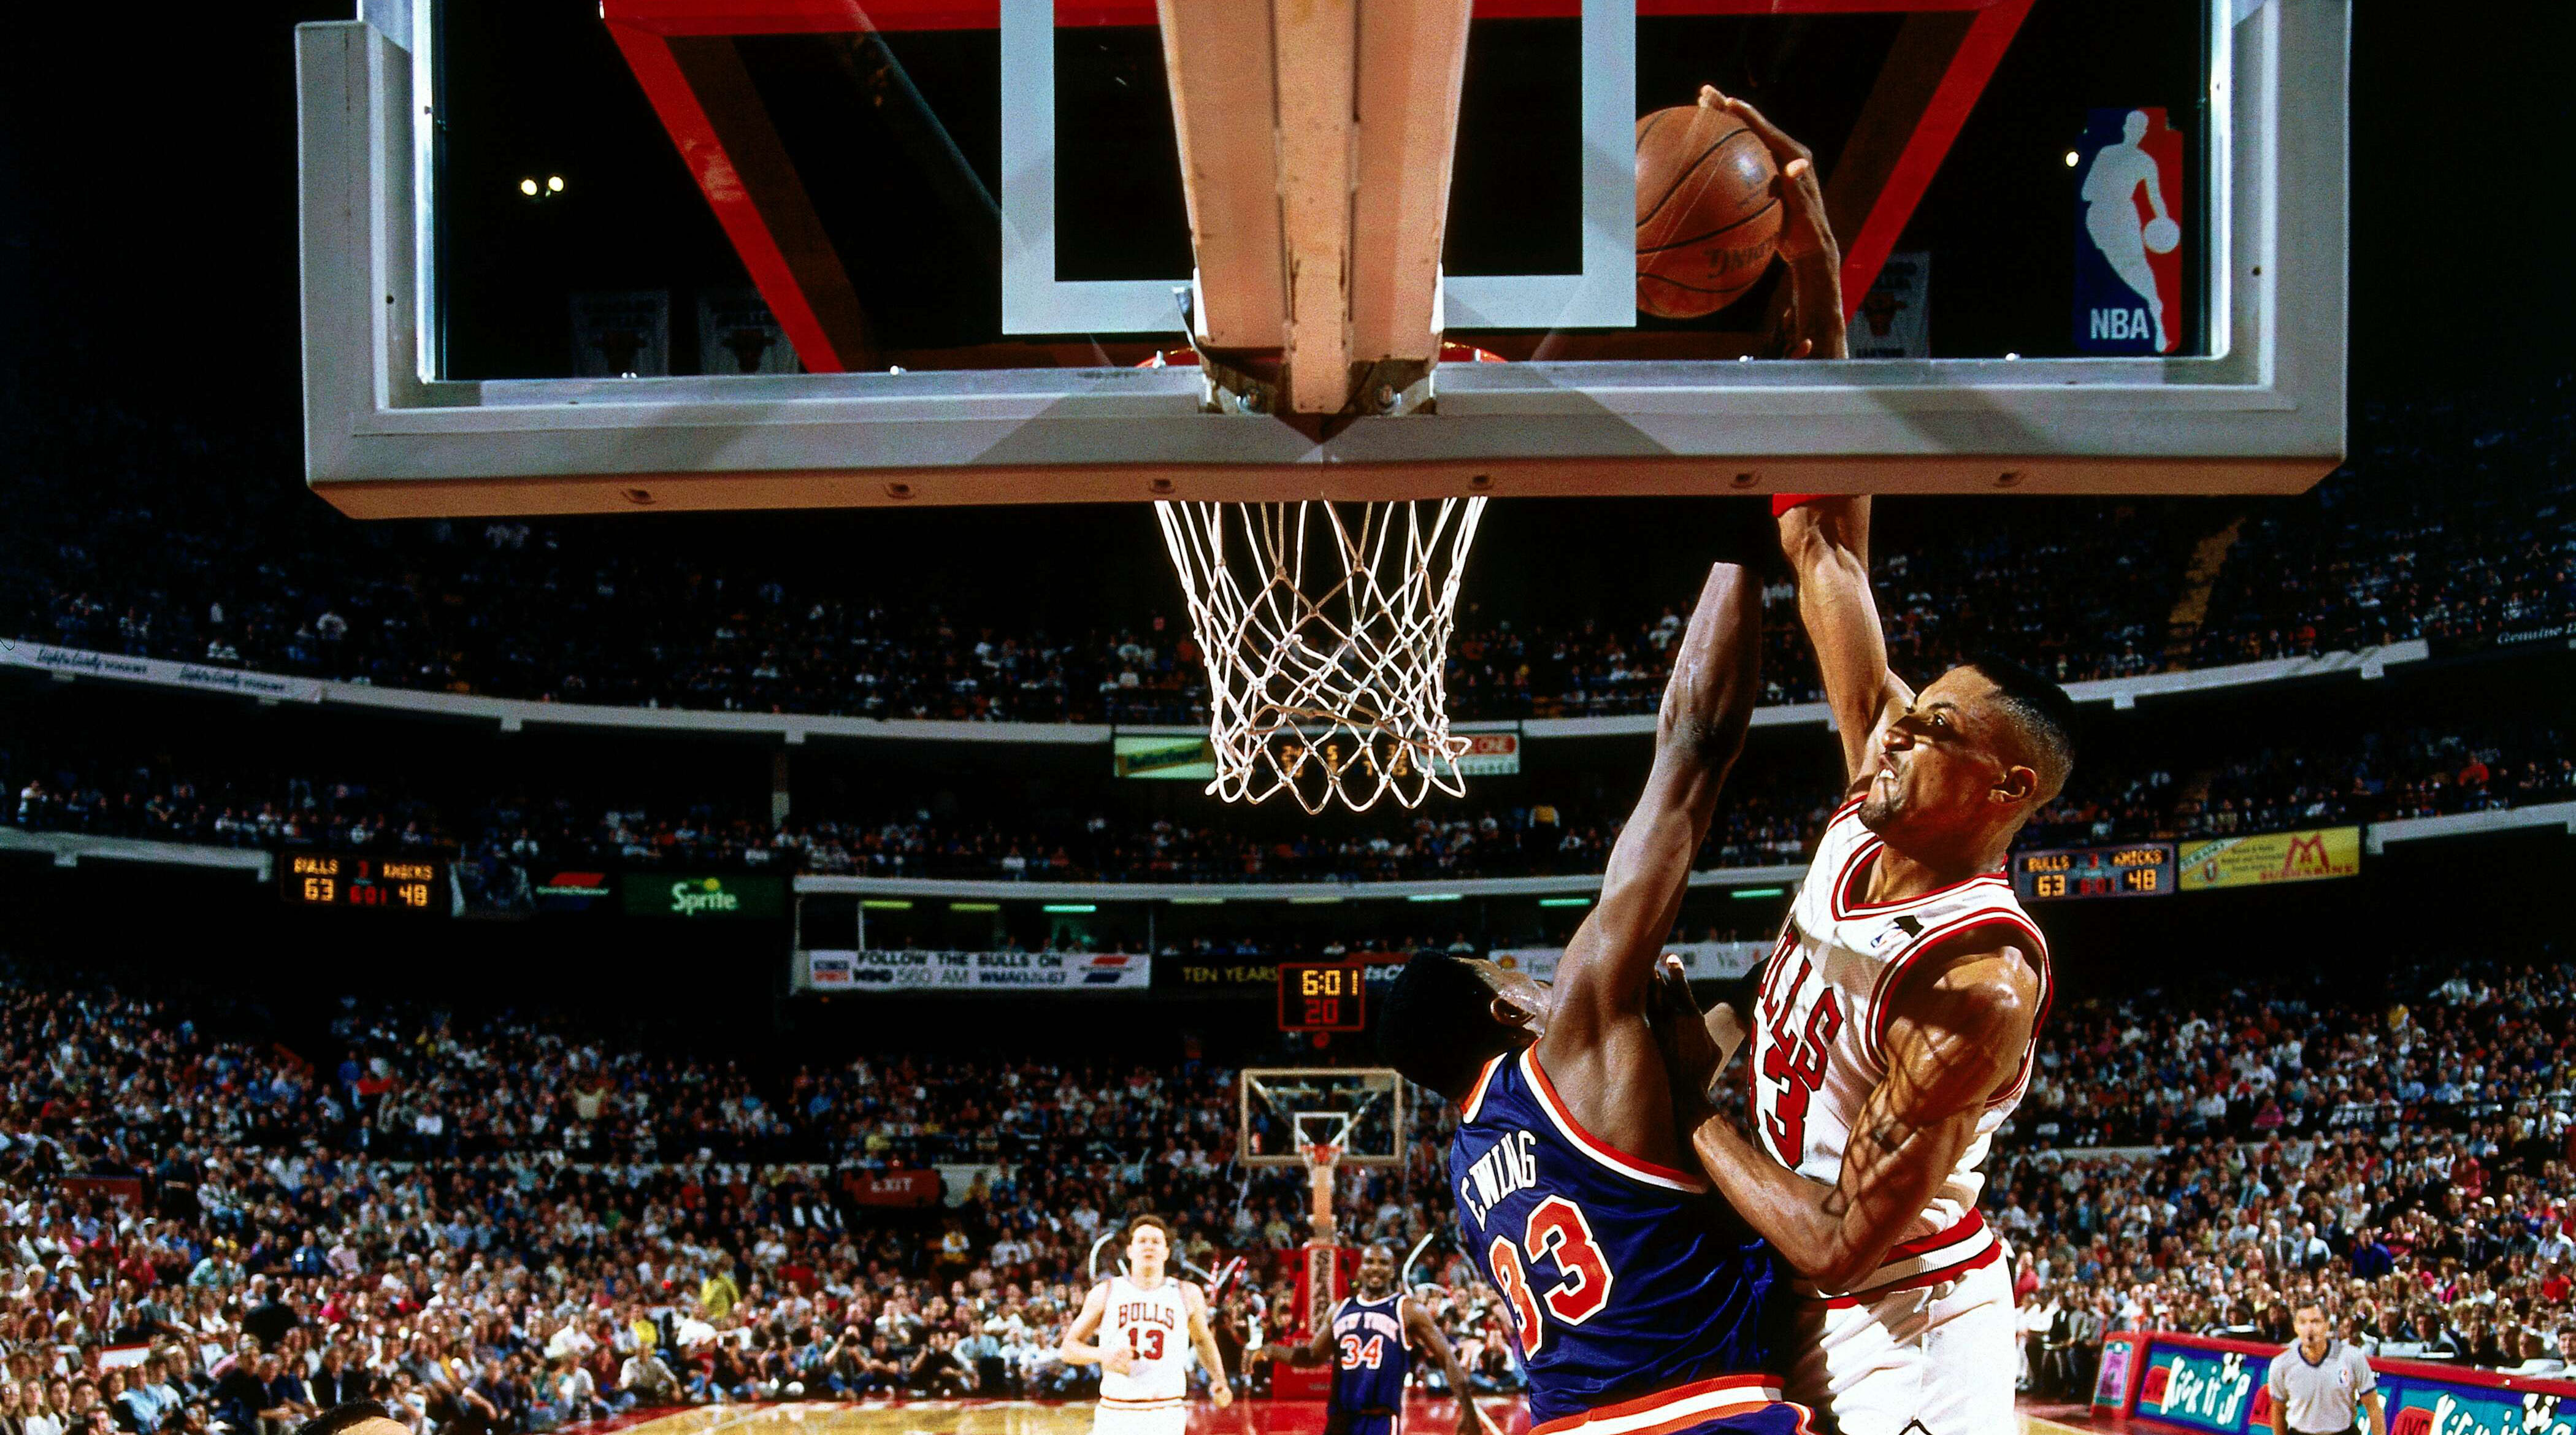 Scottie Pippen dunk on Patrick Ewing revisited